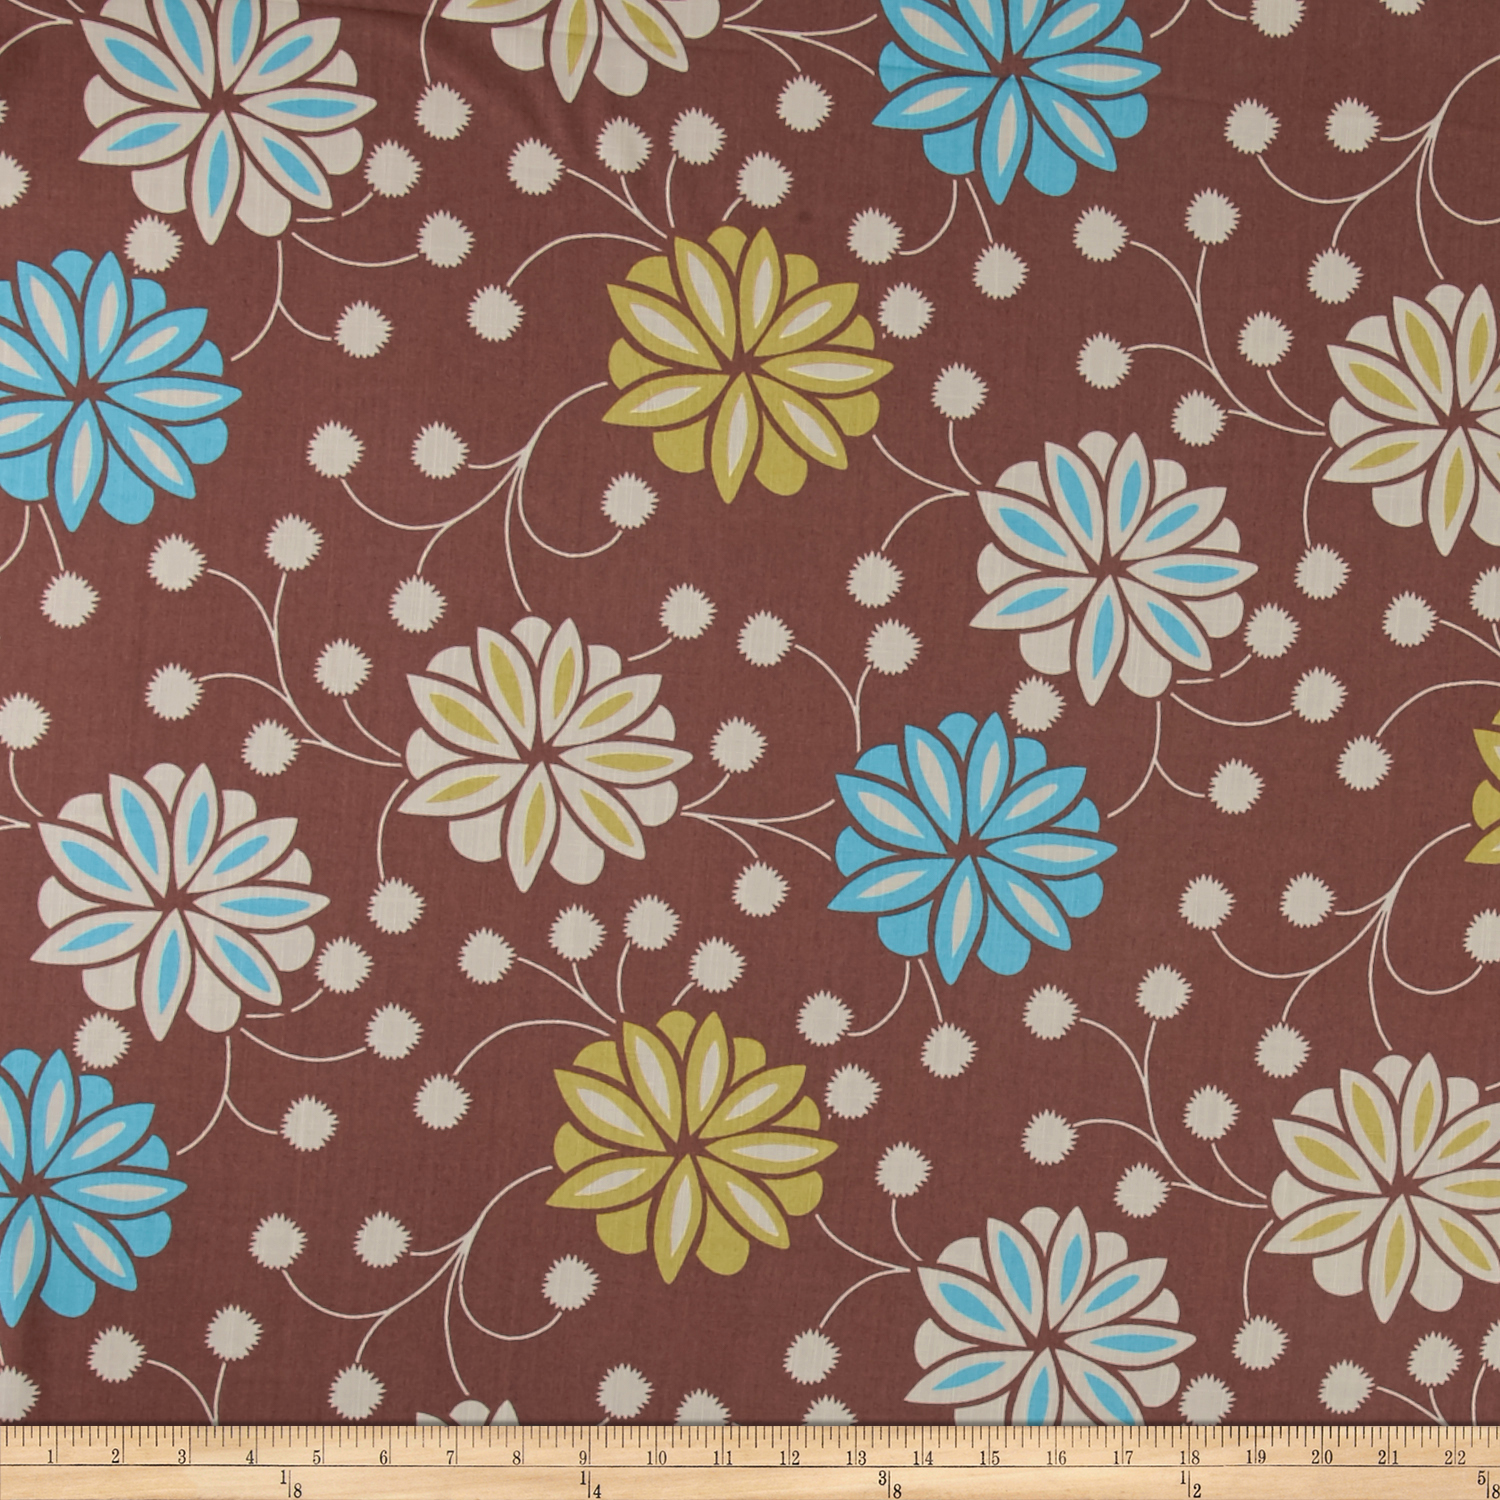 Ansley Home Decor Floral Brown Fabric